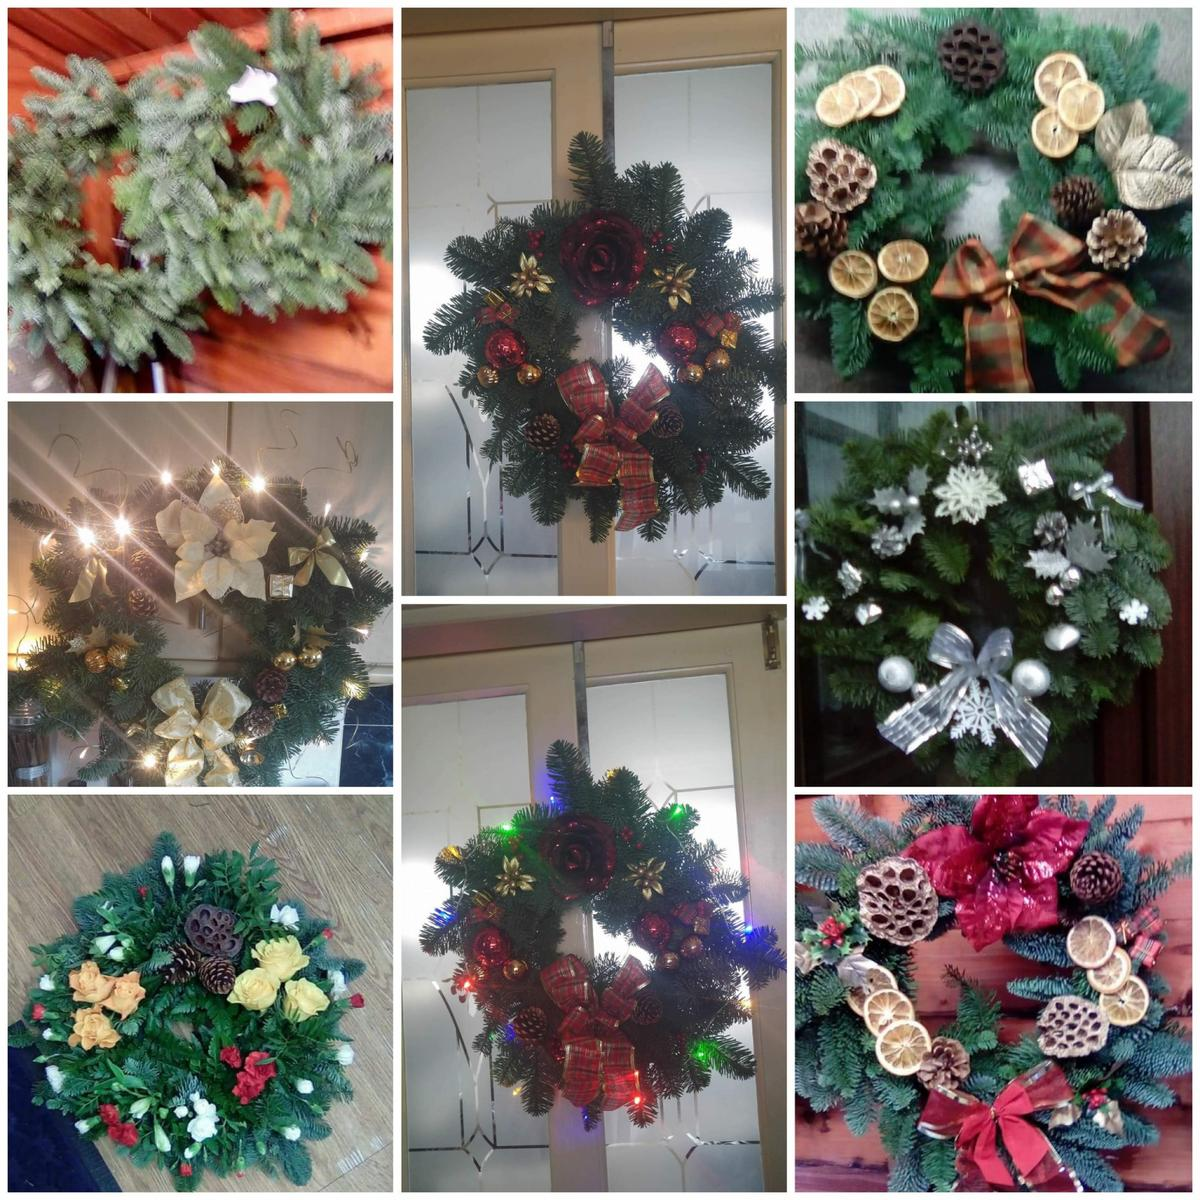 Fresh Christmas Wreaths.Real Fresh Spruce Christmas Wreaths